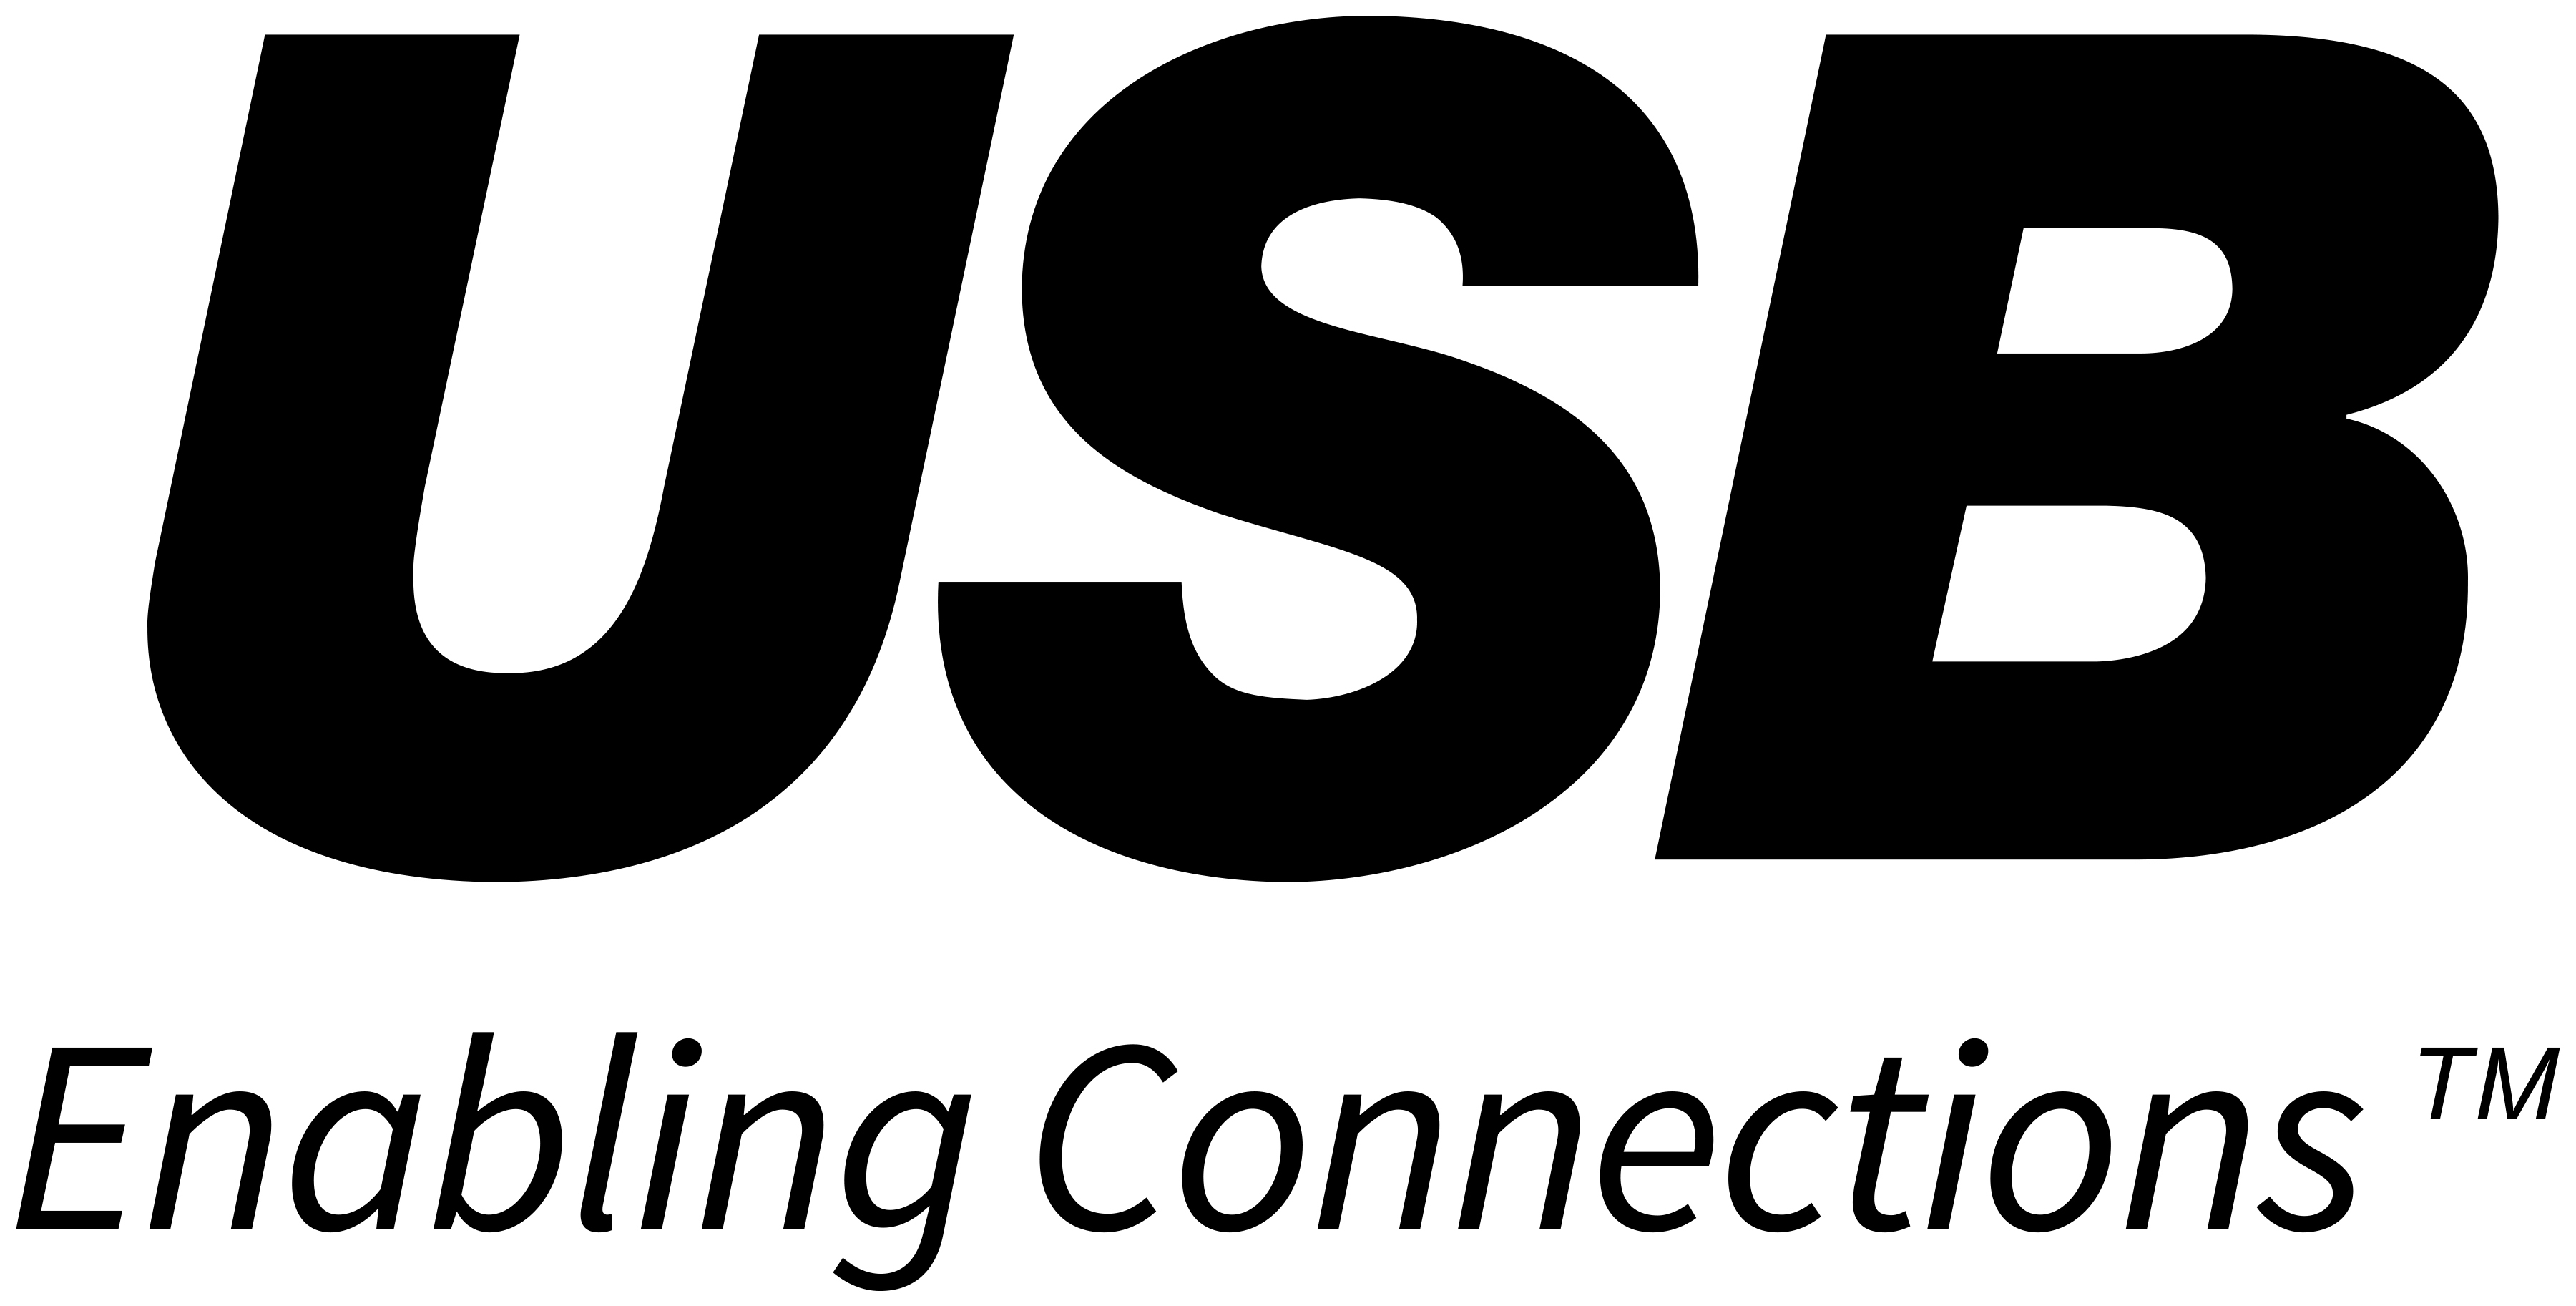 Usb If Introduces Fast Charging To Expand Its Certified